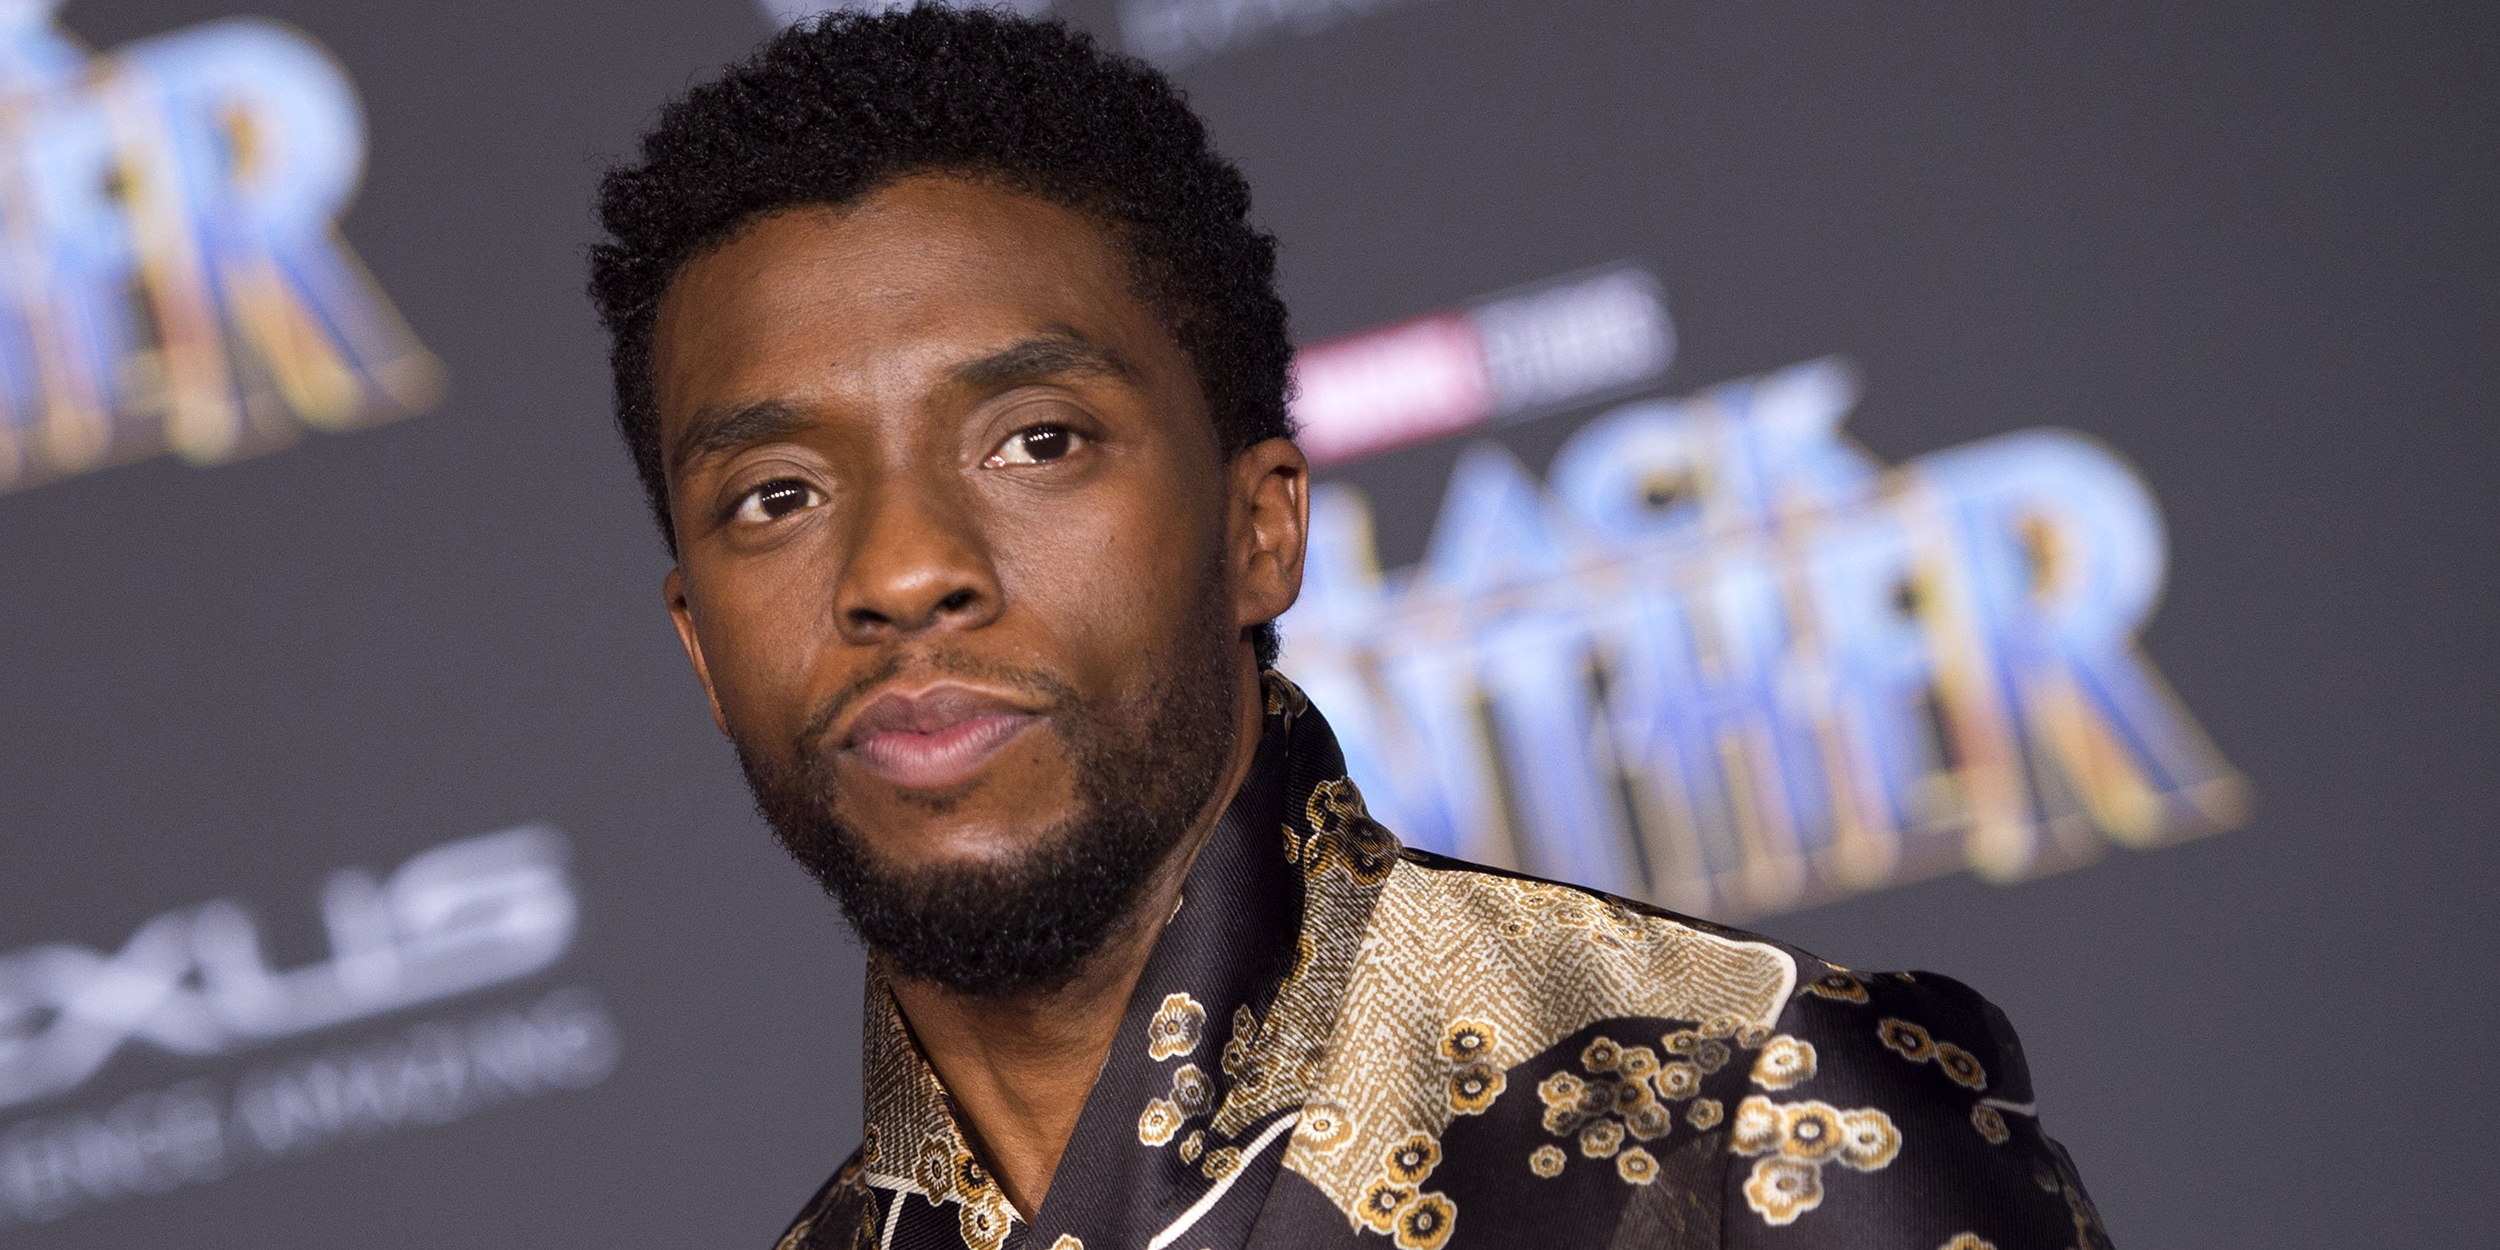 Chadwick Boseman's death underscores colorectal cancer increase in younger adults and health gaps for African Americans